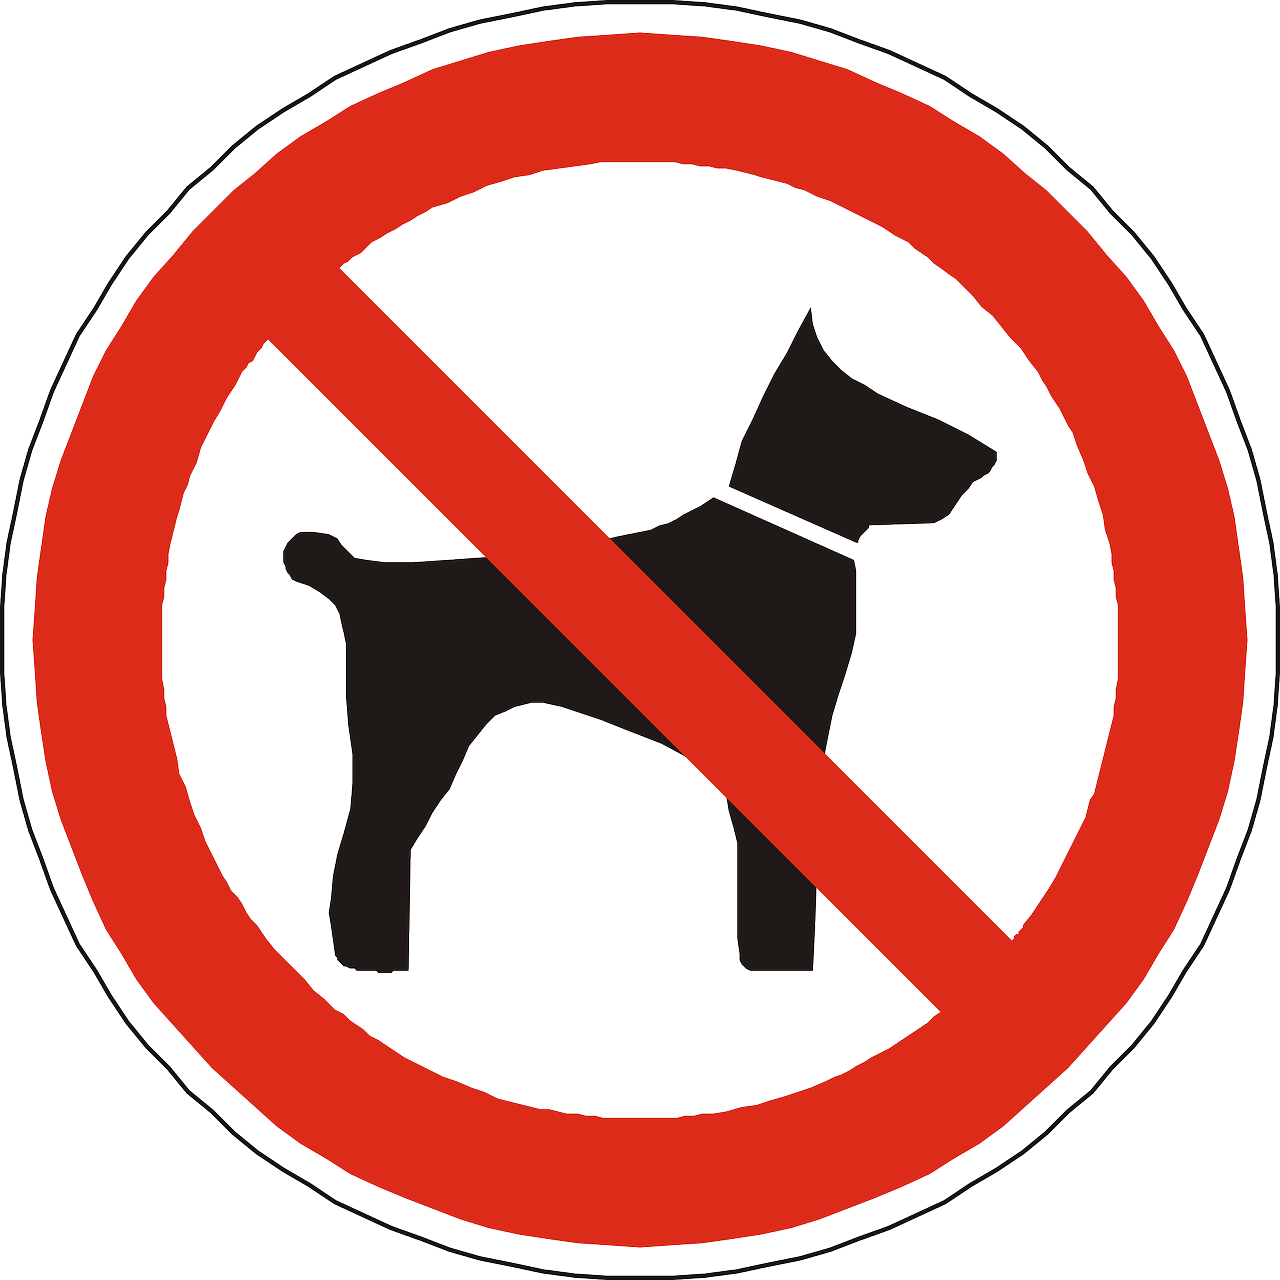 dogs prohibited forbidden free photo